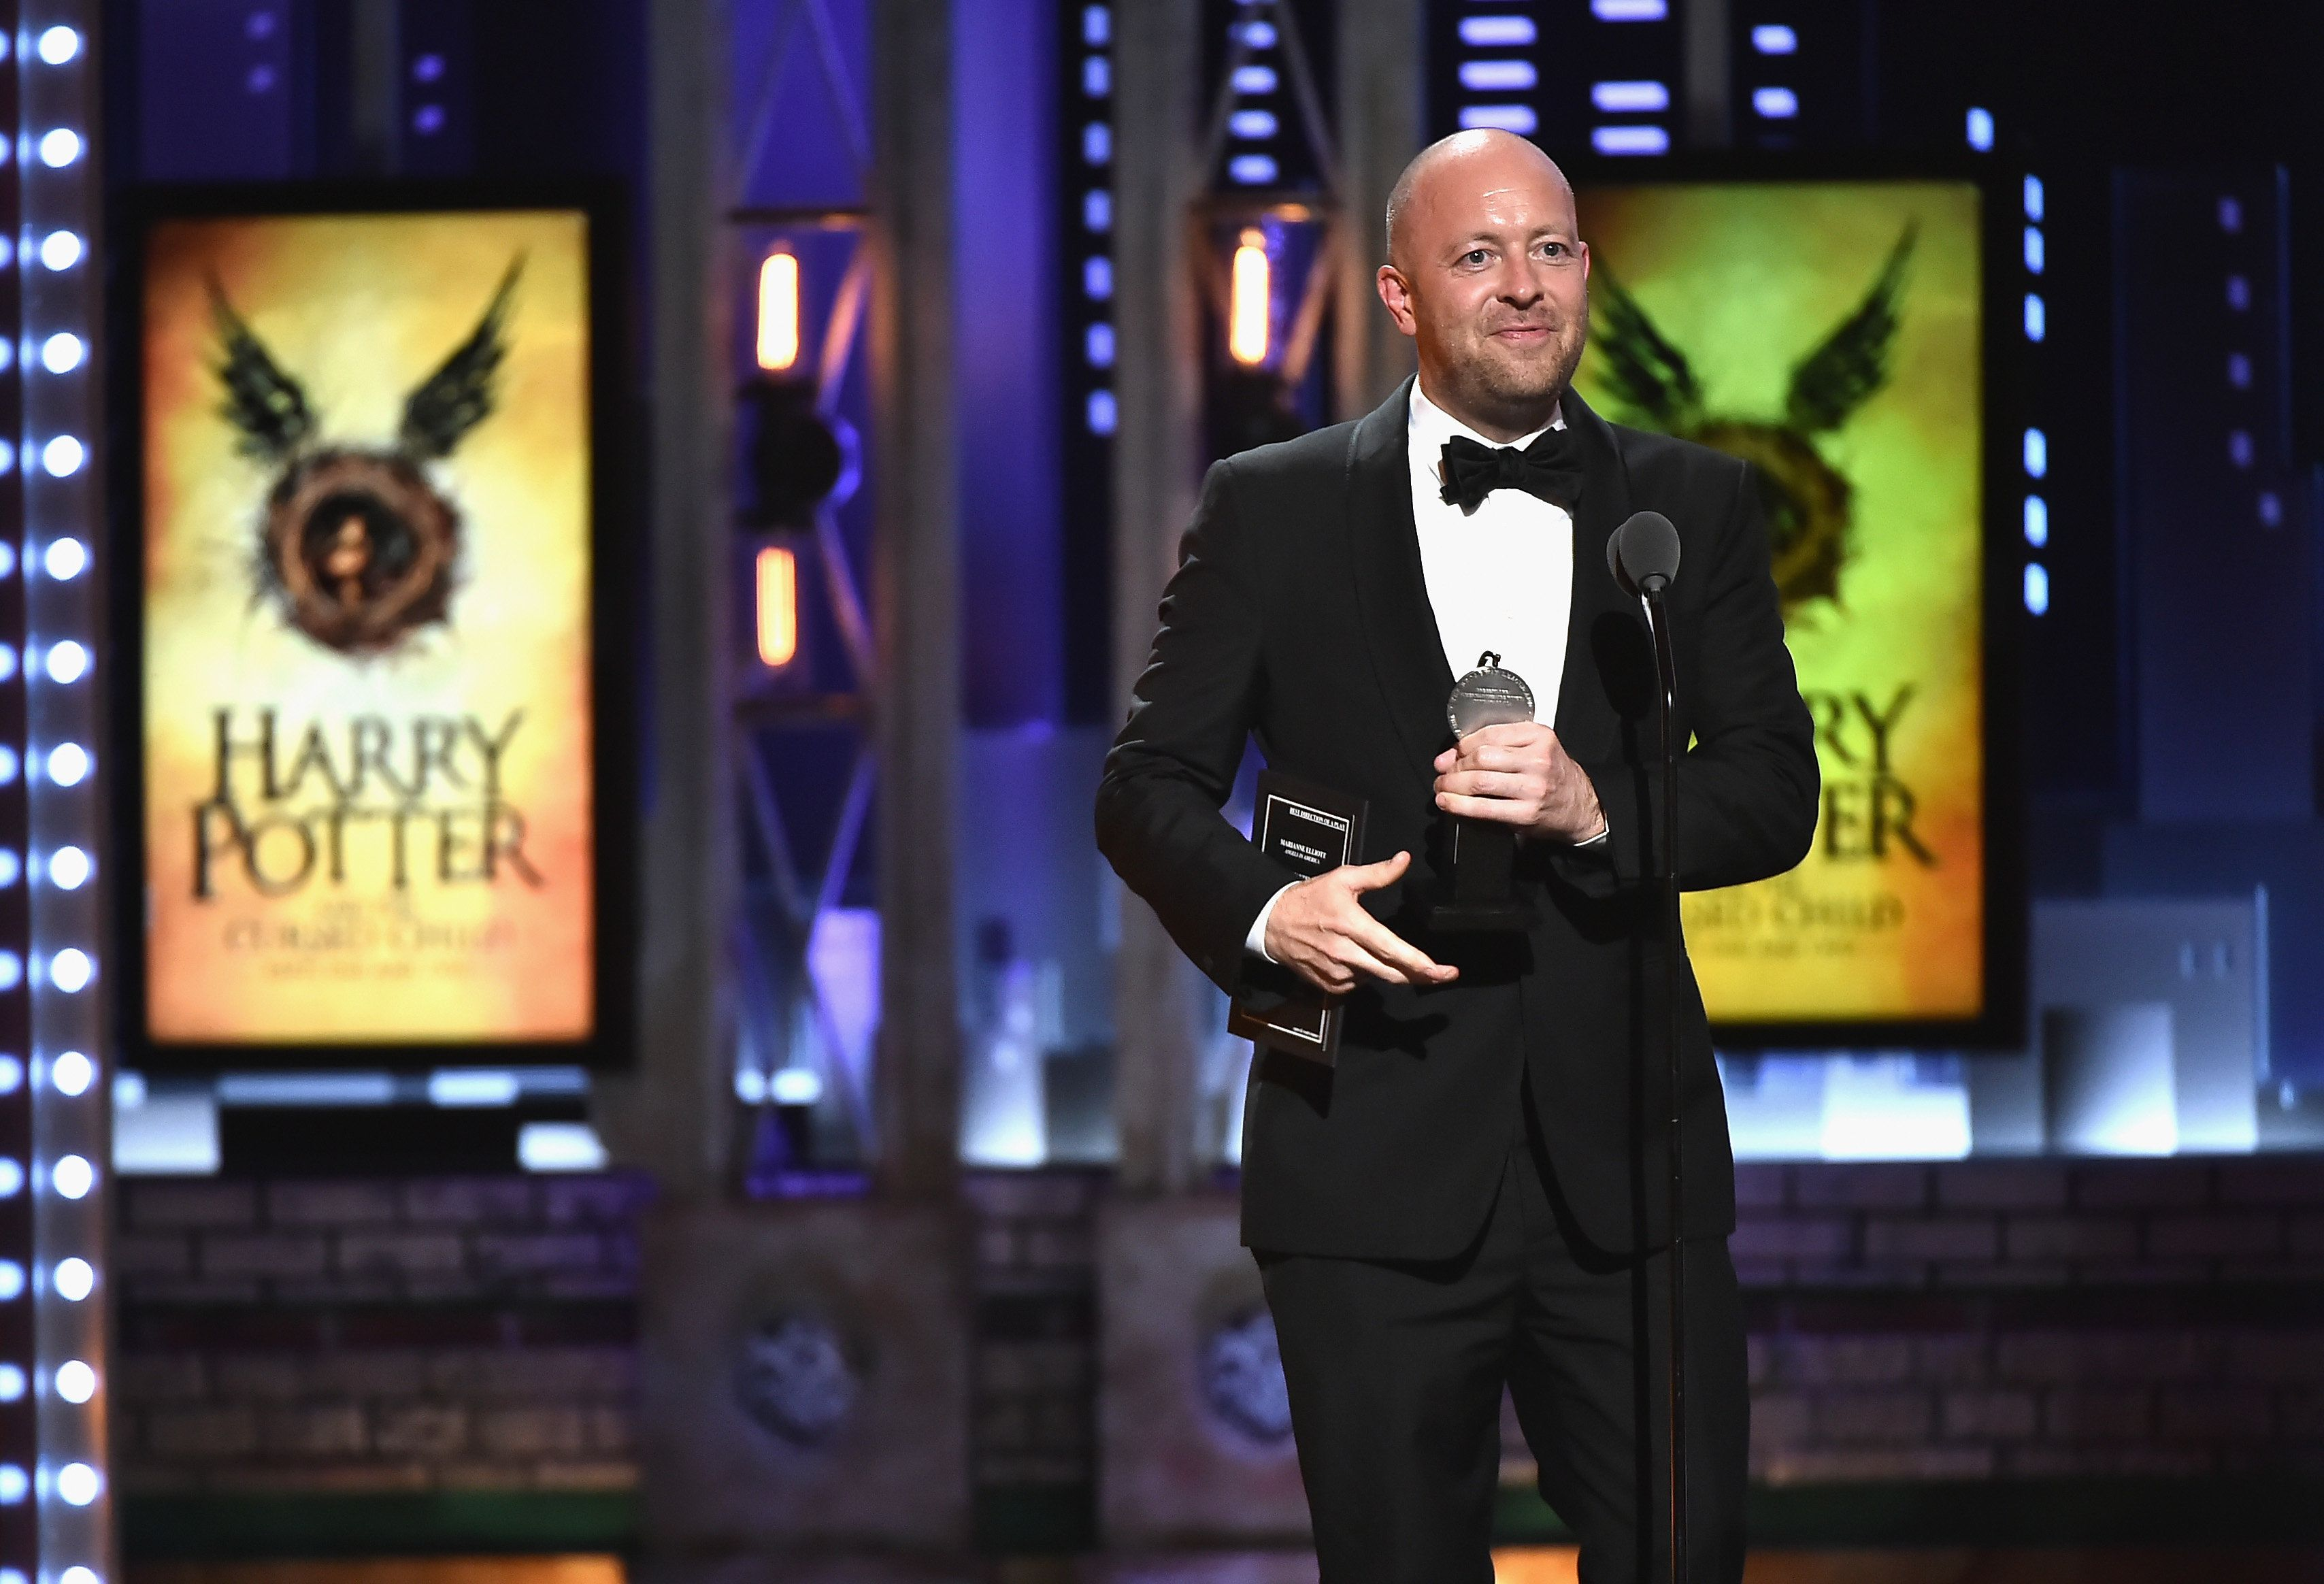 NEW YORK, NY - JUNE 10: John Tiffany accepts the award for Best Direction of a Play for Harry Potter and the Cursed Child, Parts One and Two onstage during the 72nd Annual Tony Awards at Radio City Music Hall on June 10, 2018 in New York City.  (Photo by Theo Wargo/Getty Images for Tony Awards Productions)